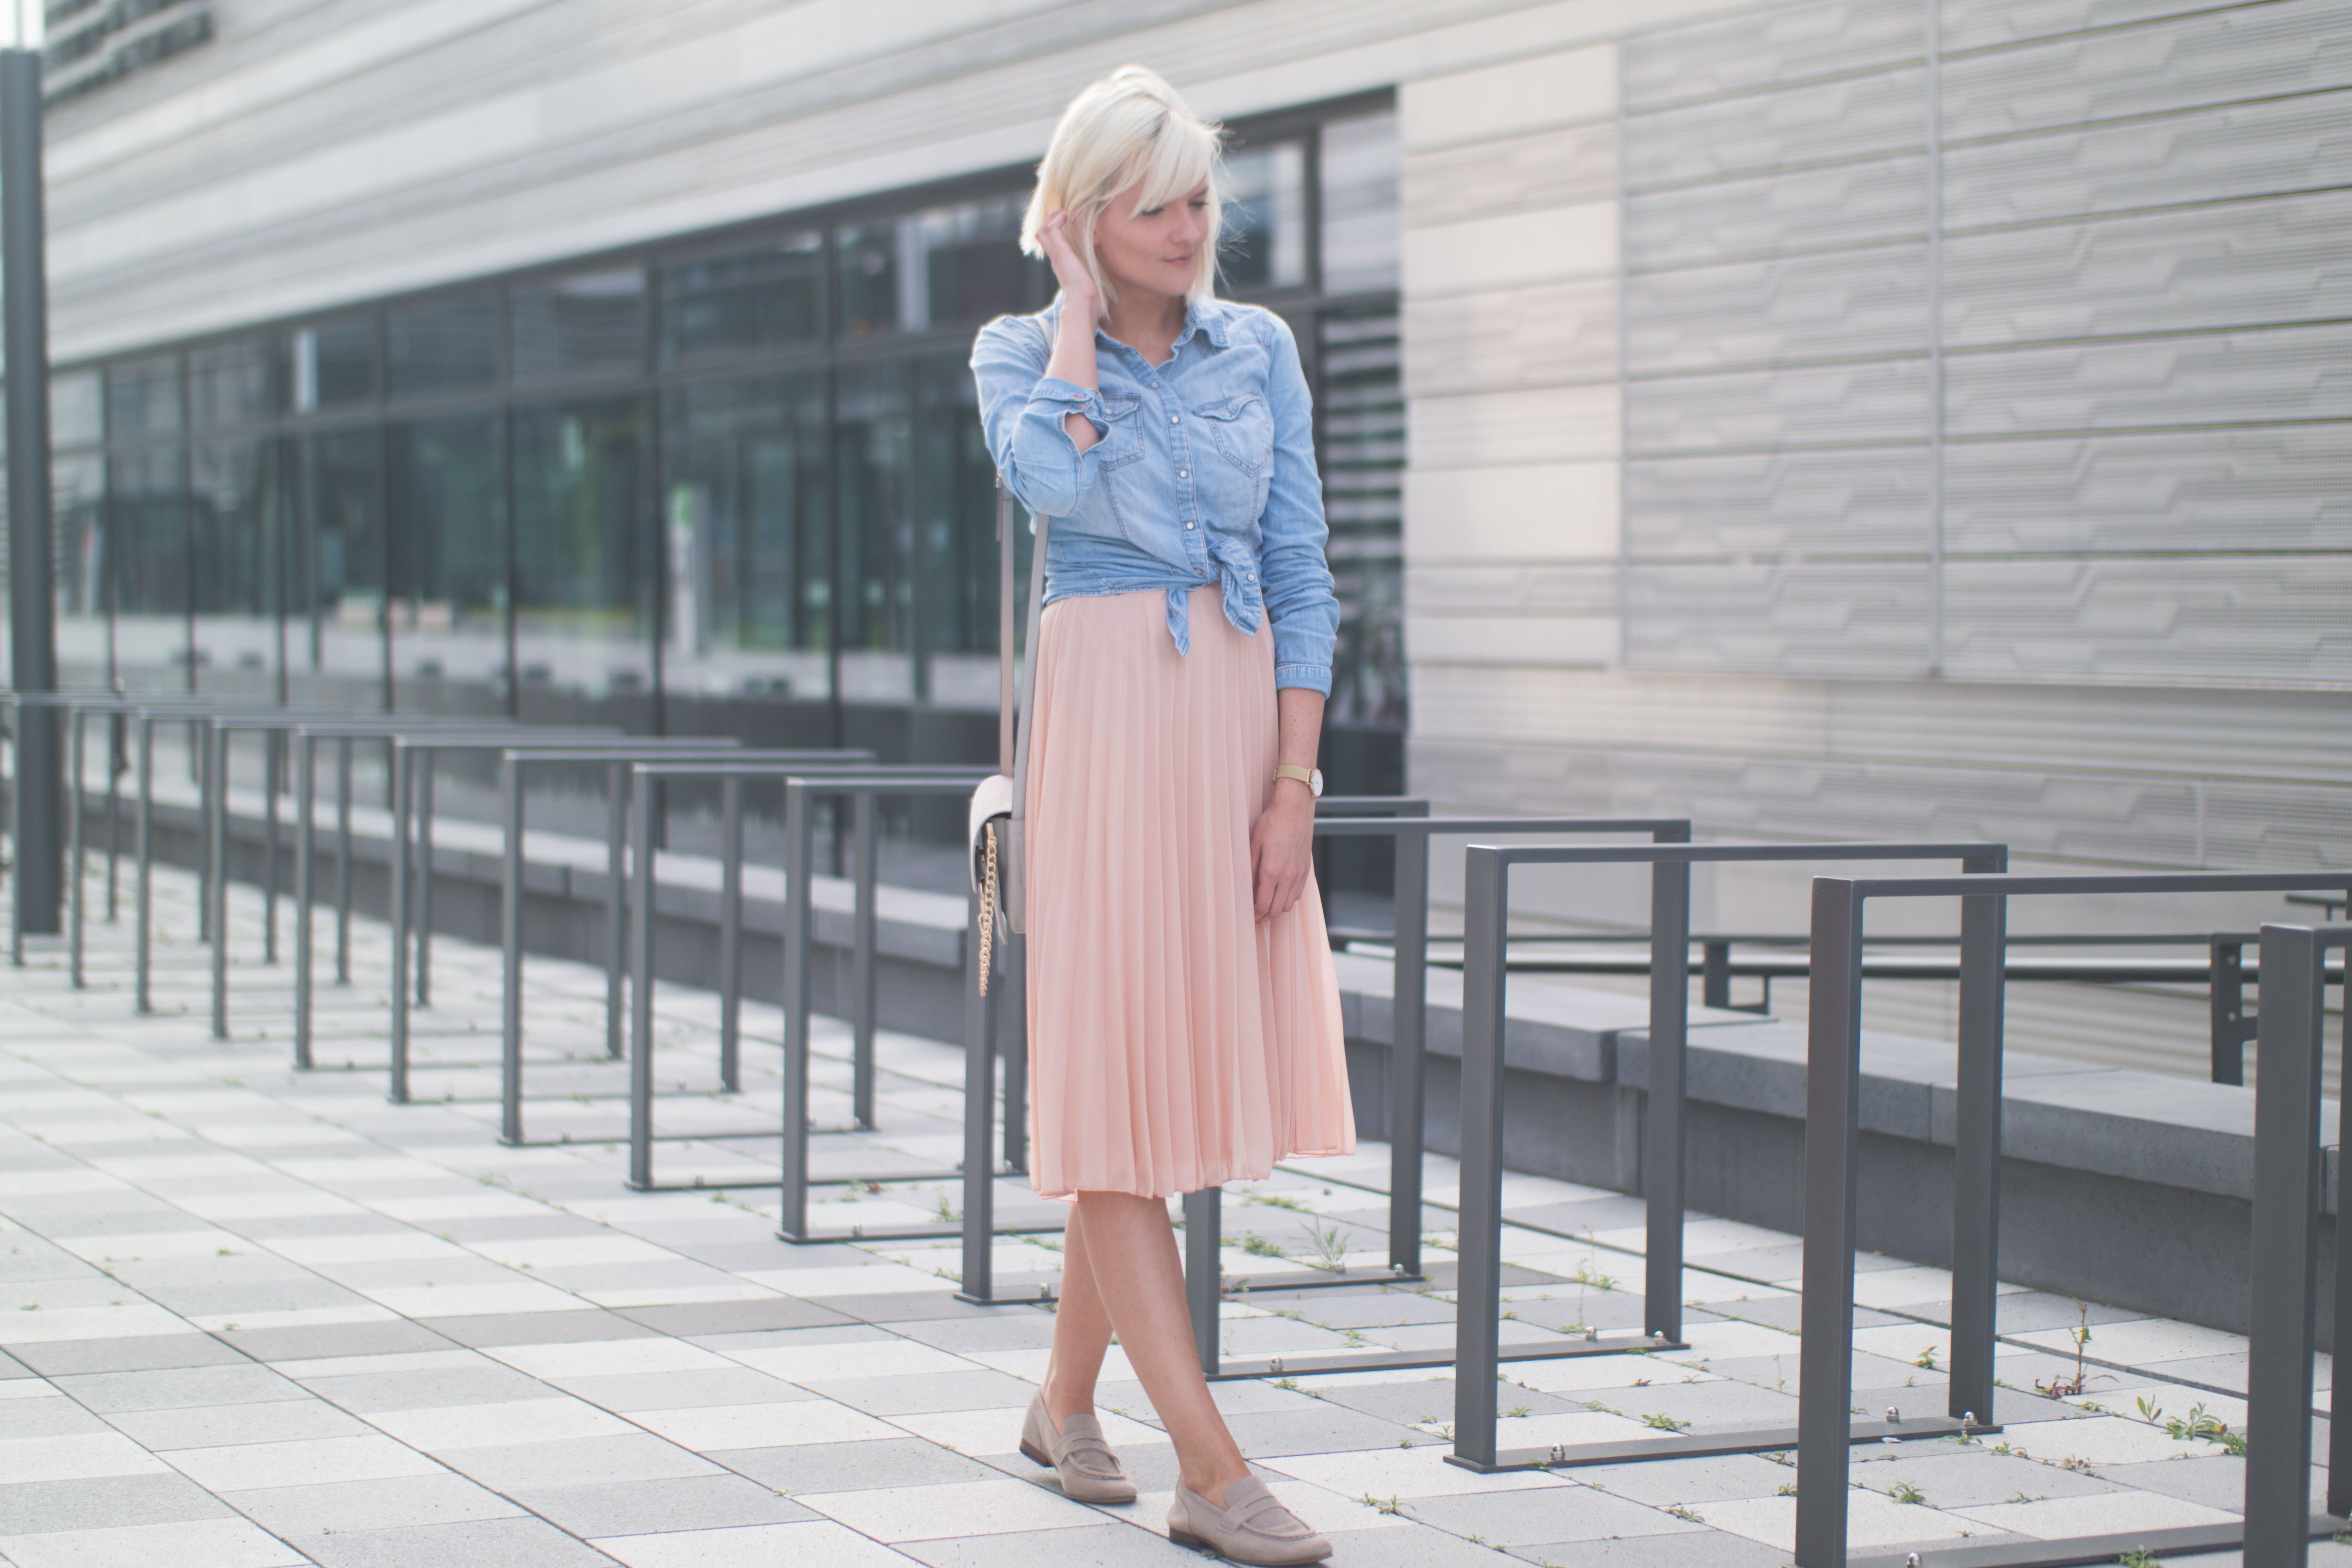 Plissee Rock Rosa Jeanshemd Und Loafers Grau Graue Outfits Graue Mode Outfit